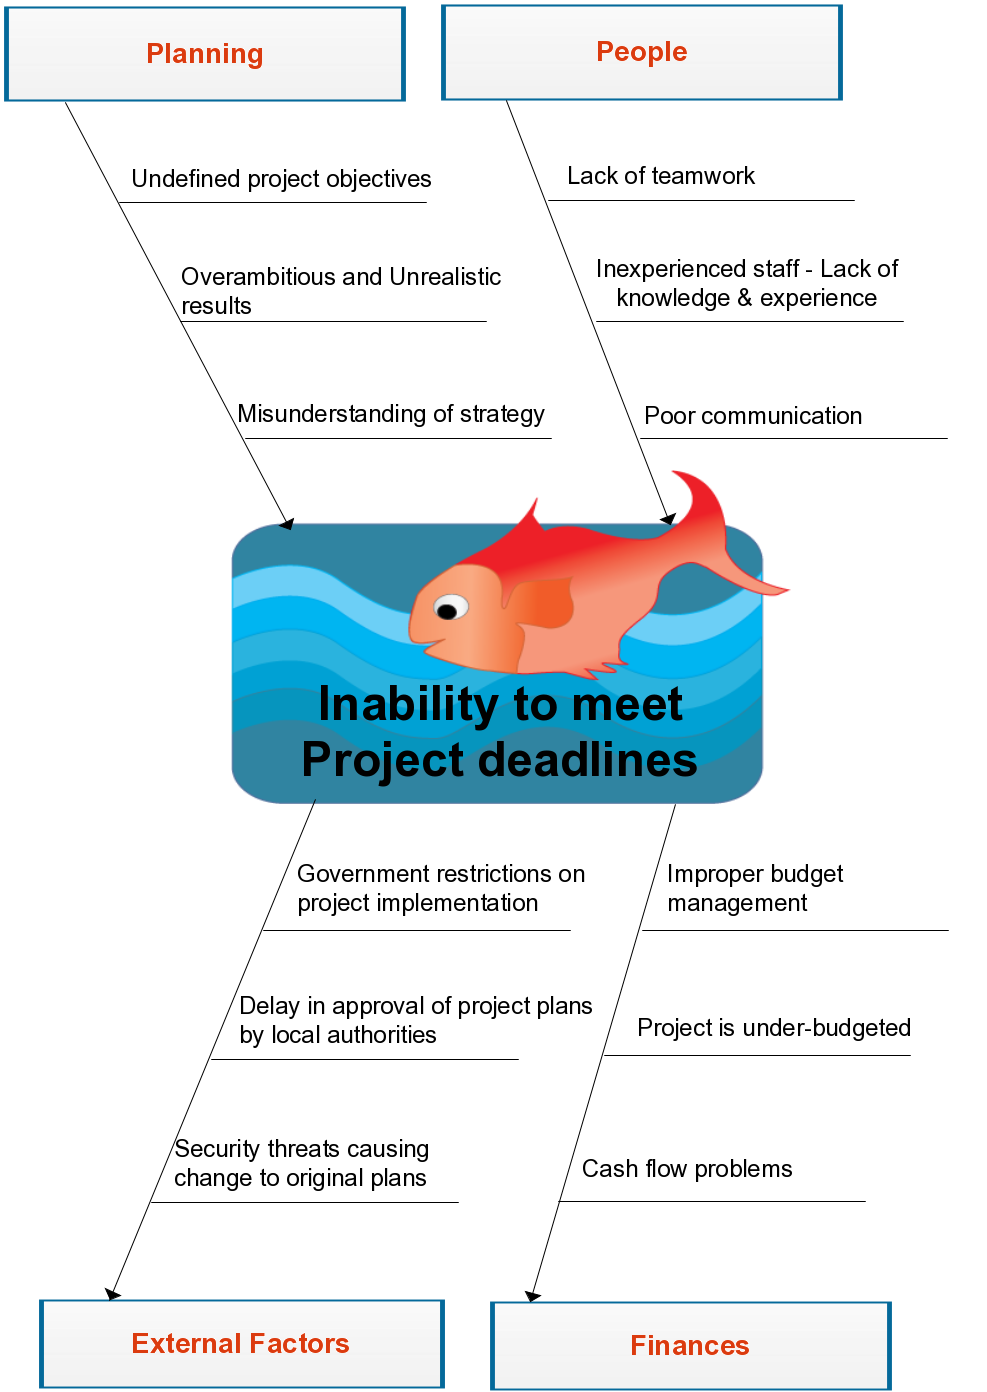 Fishbone diagram example showing the Inability to meet